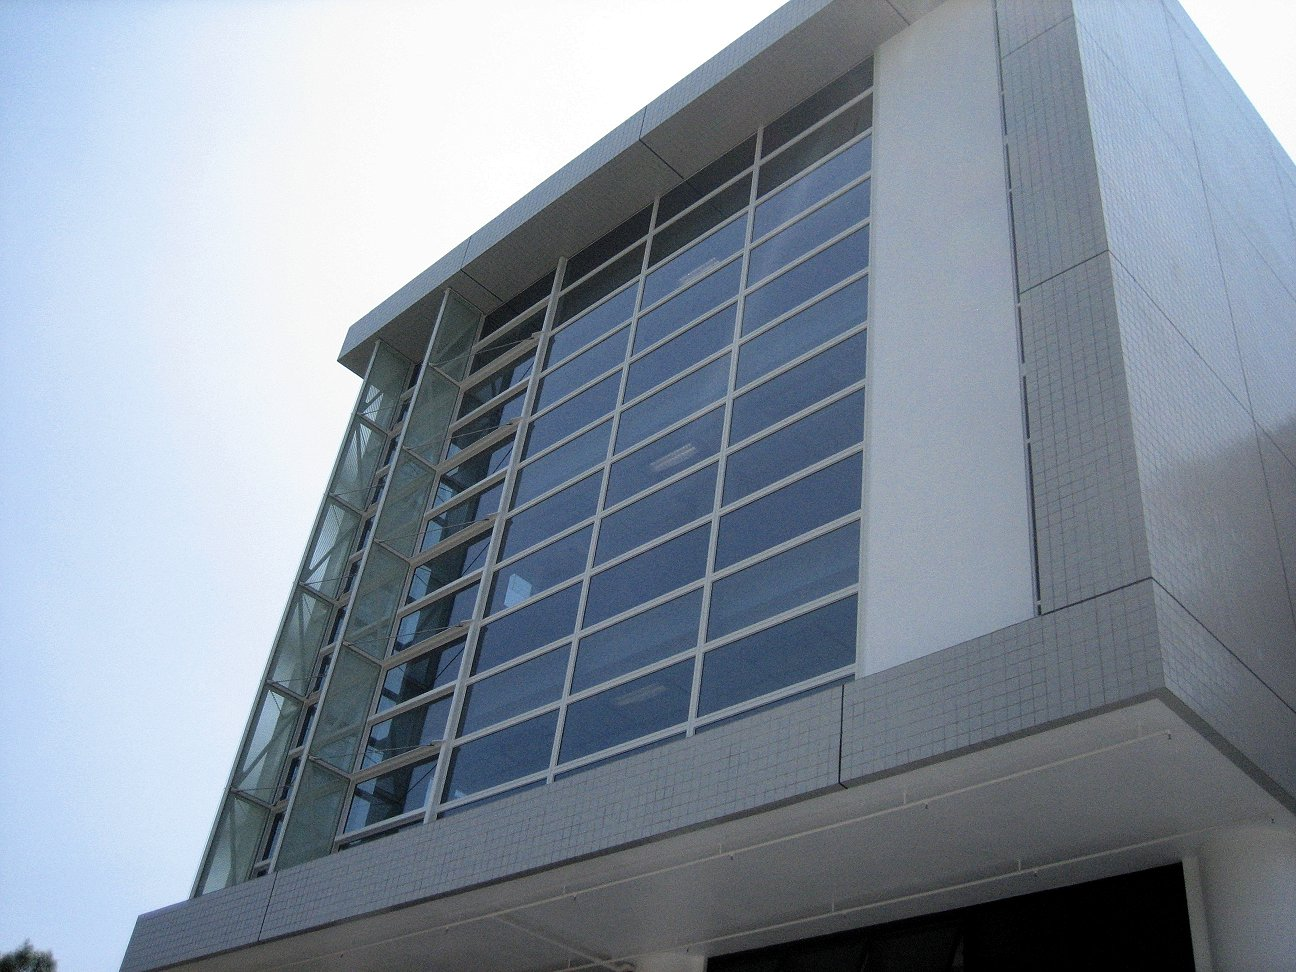 Exterior view of the North wall